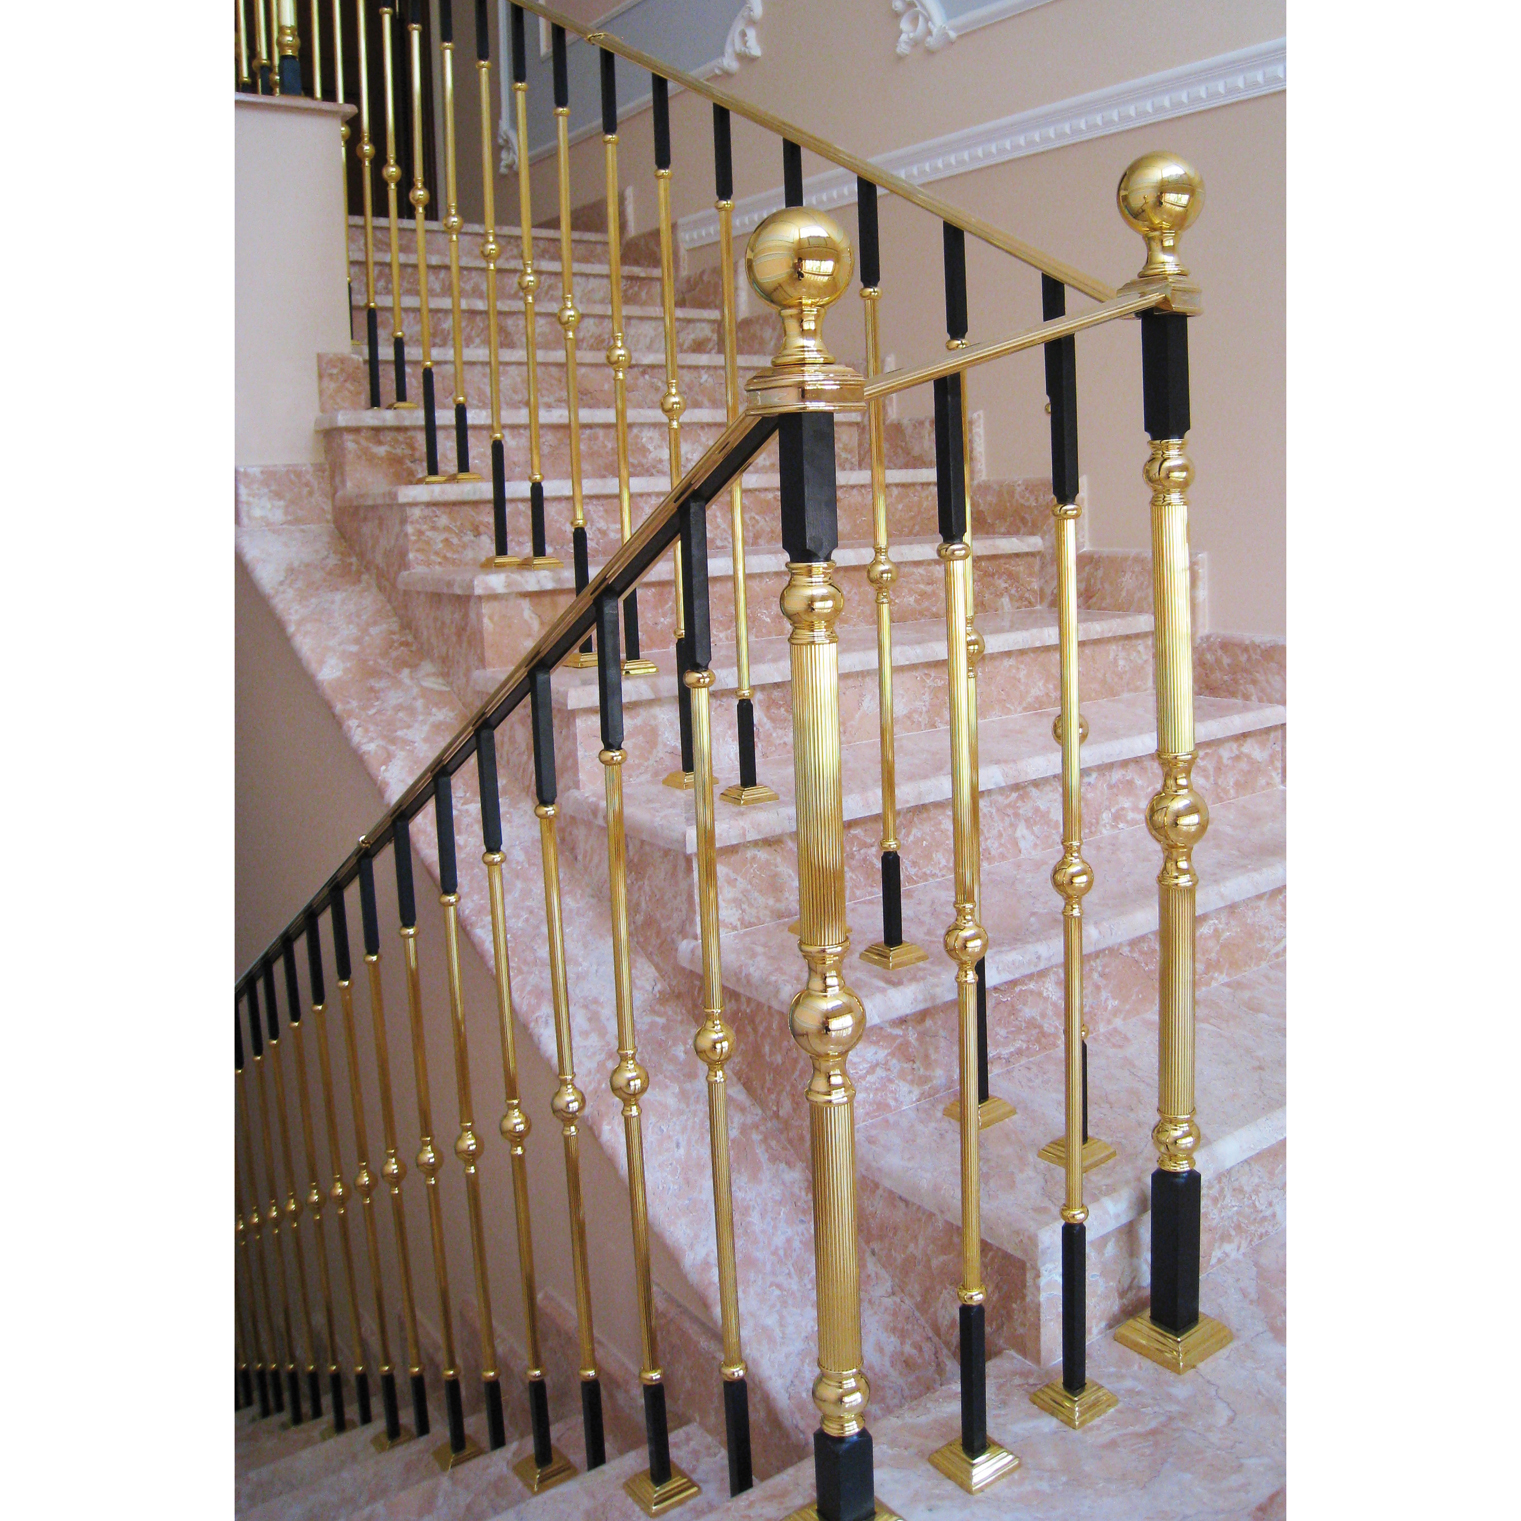 Grand Forge grand forge collections | railing post and balusters - gold, crystal